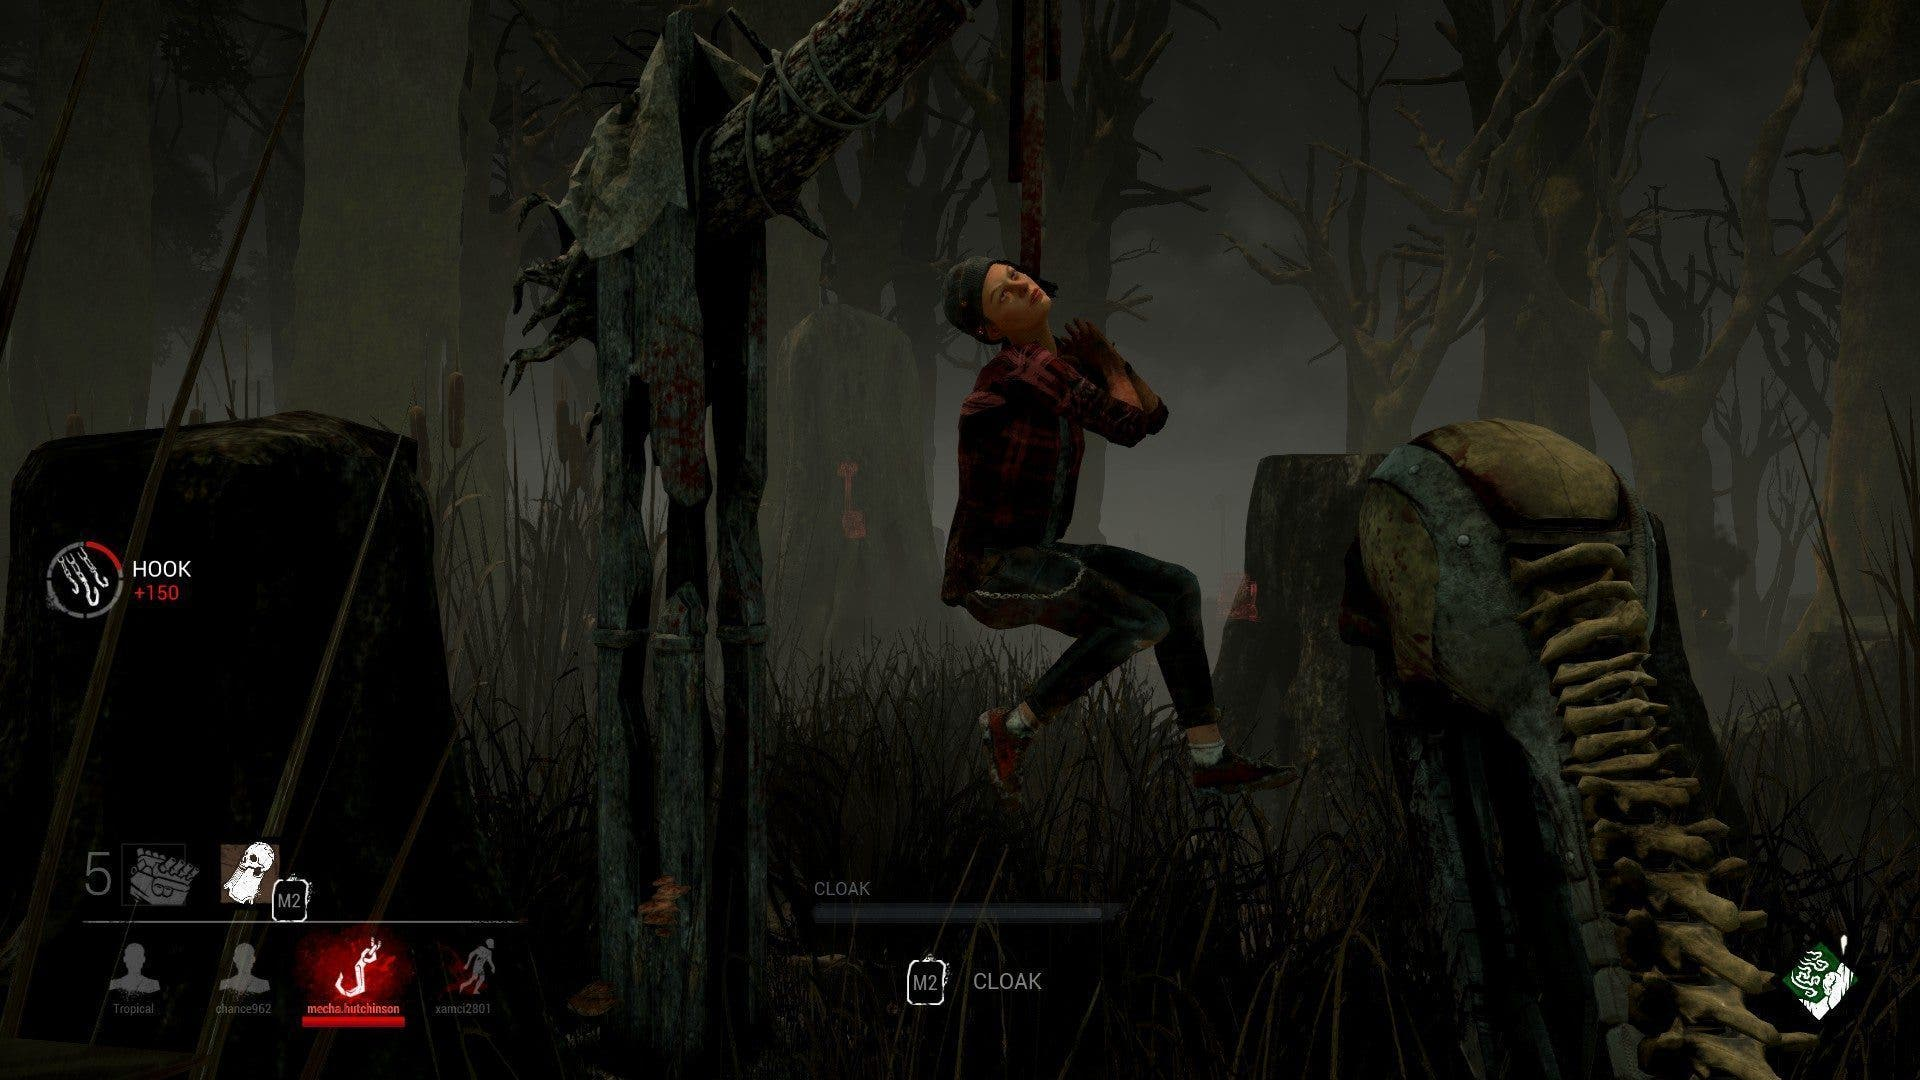 Consejos para empezar en Dead by Daylight, ya disponible en Xbox Game Pass 8